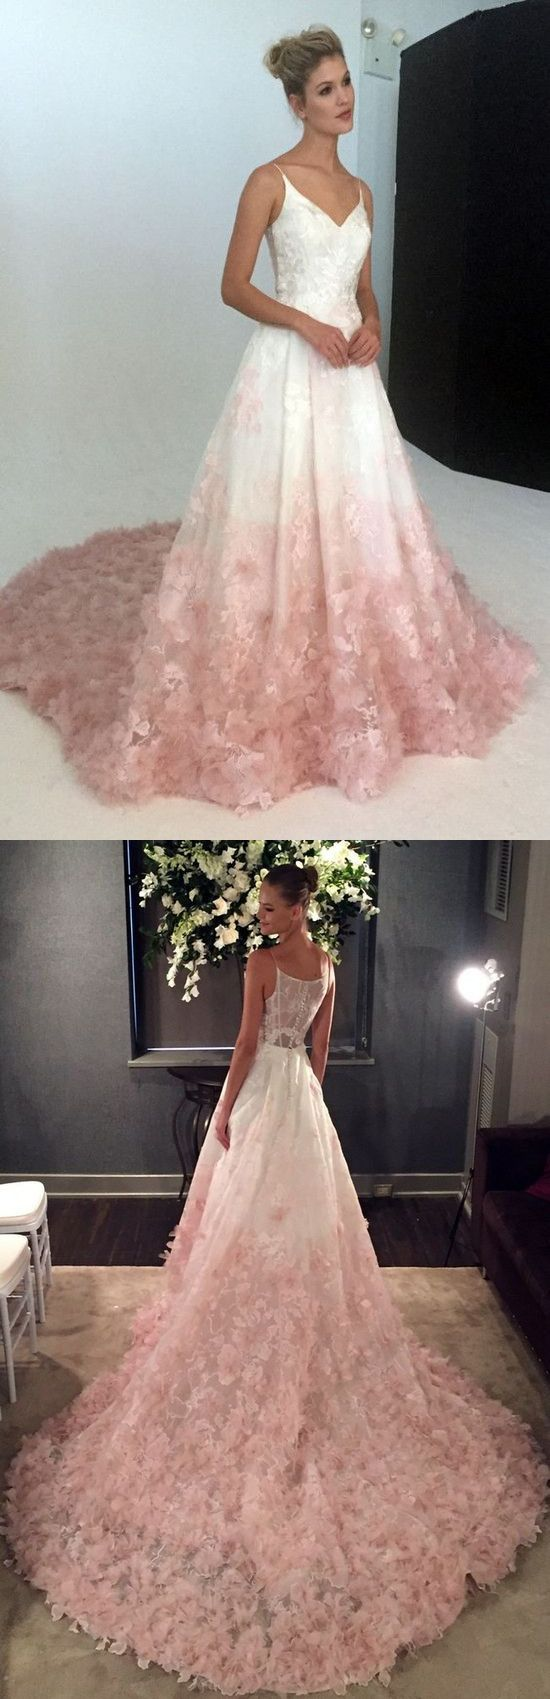 elegant straps white and pink long prom dress wedding dress | Pareja ...